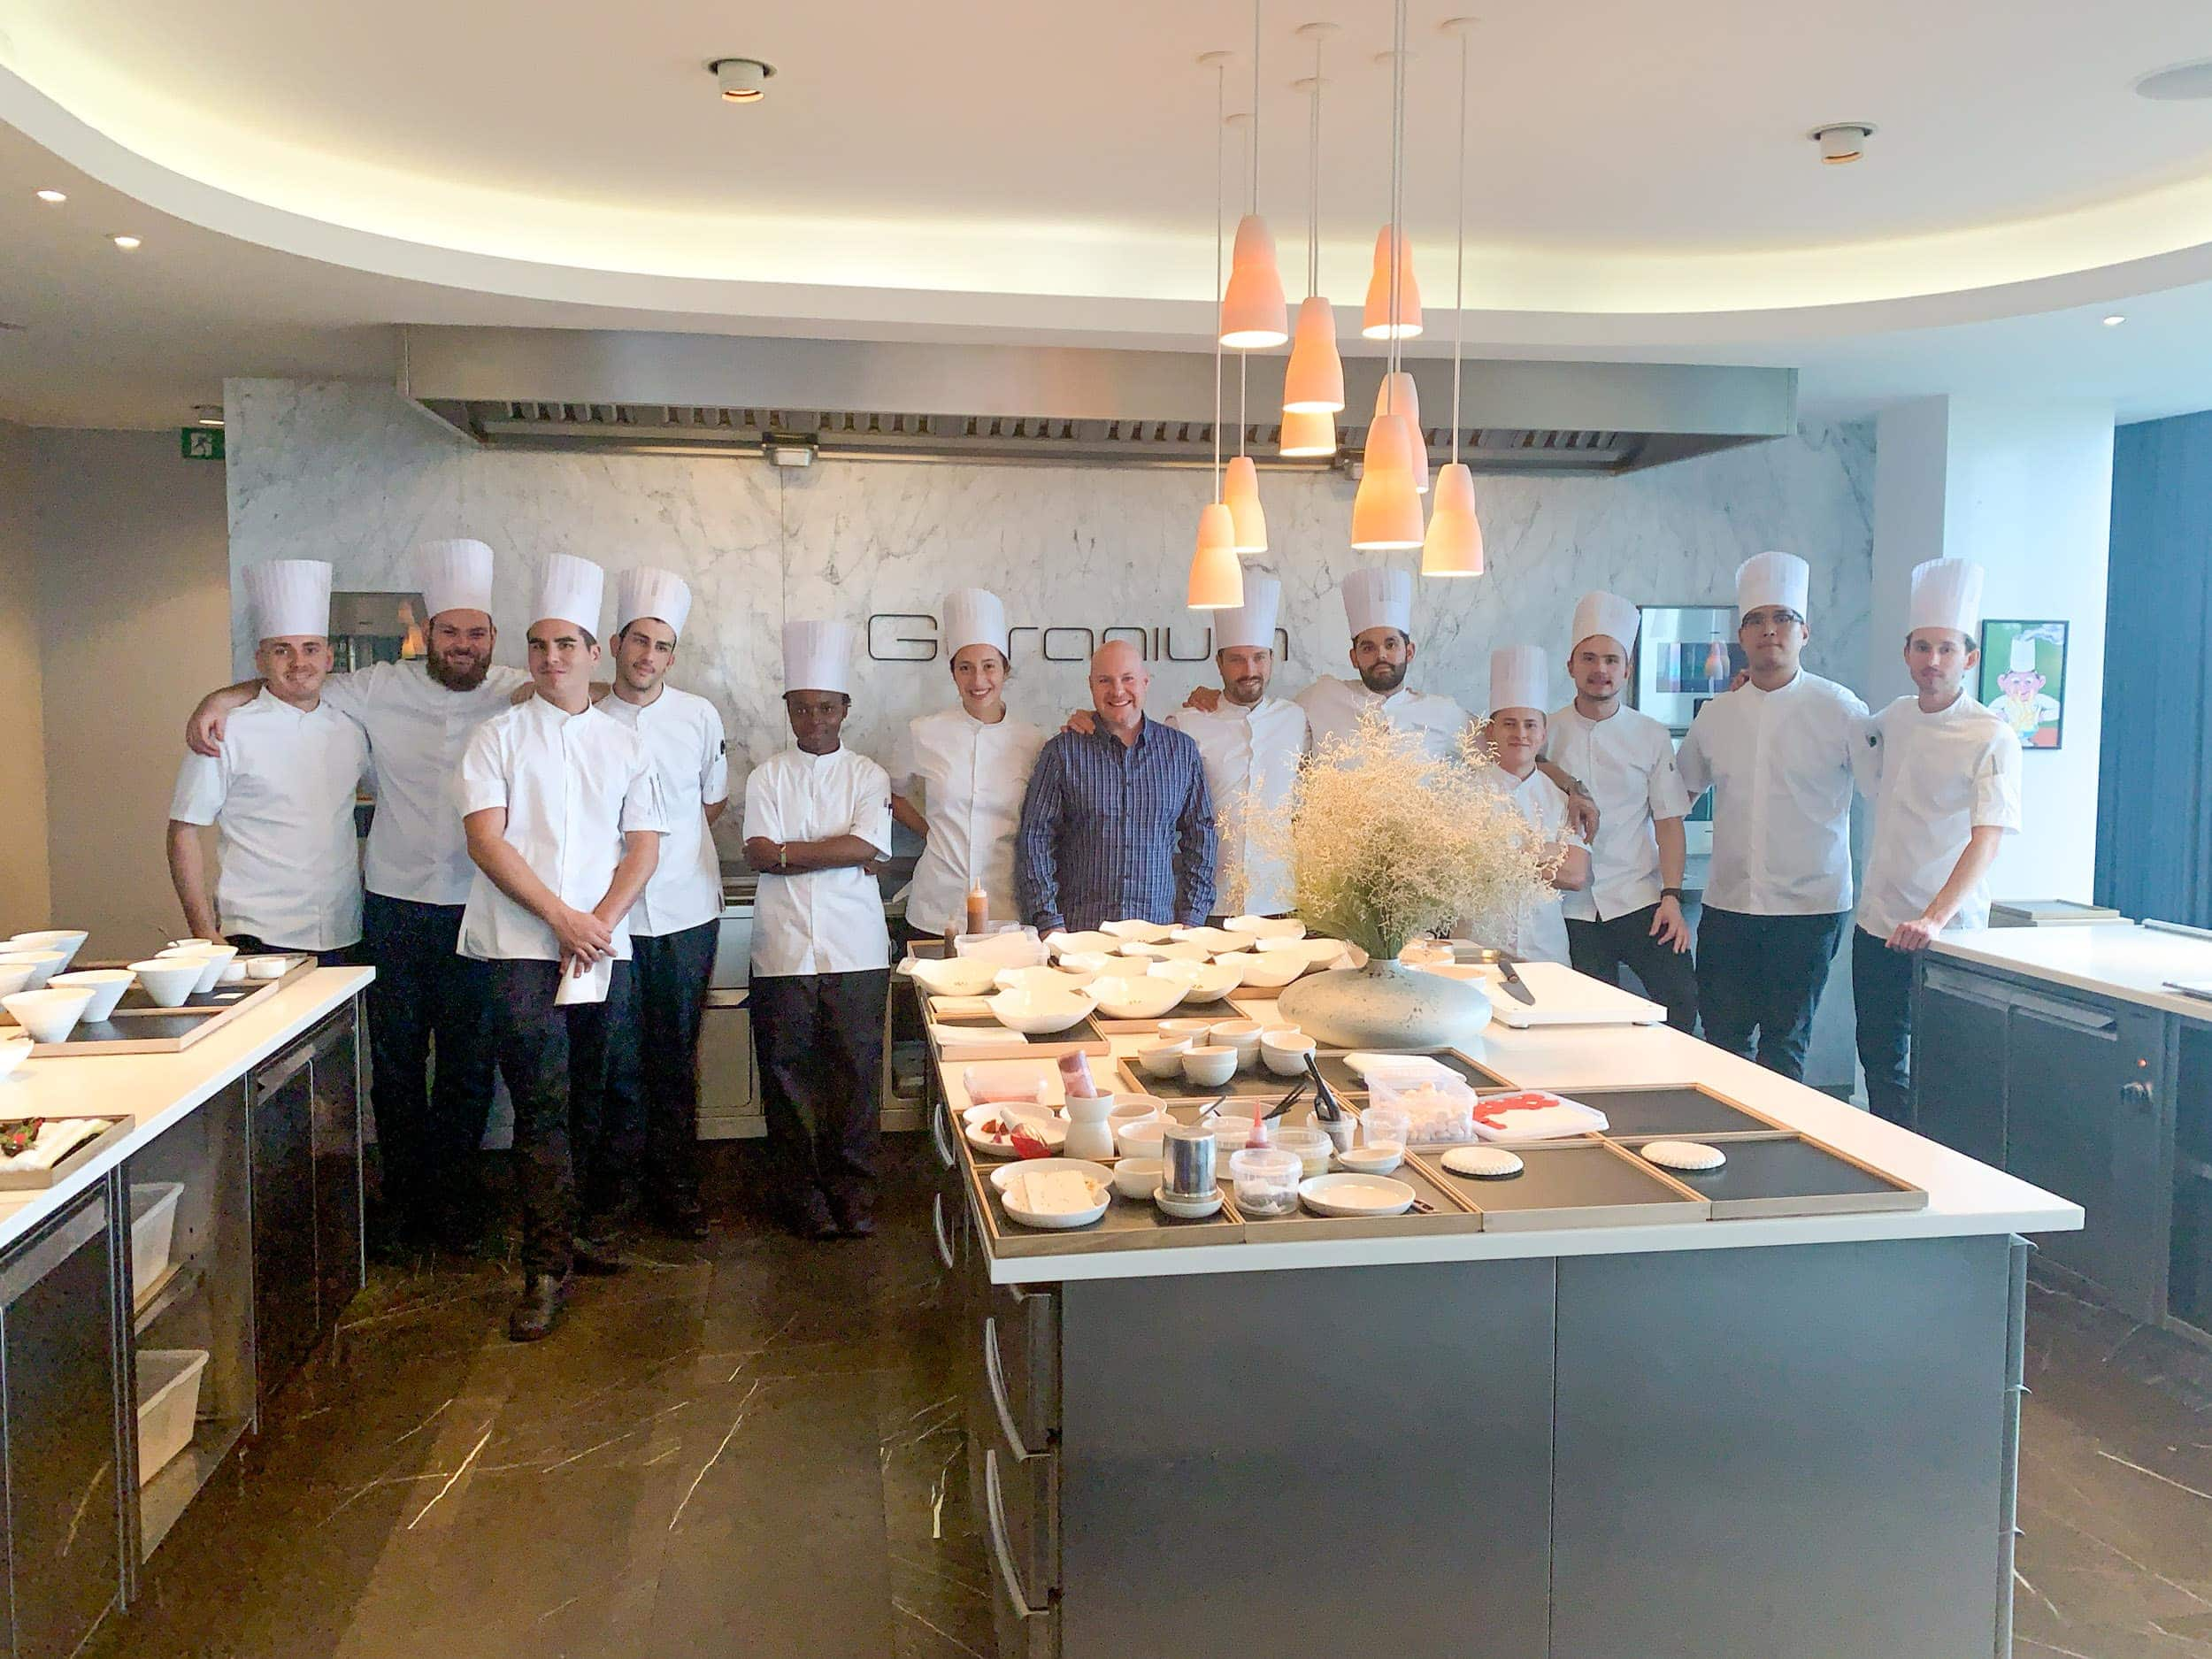 Dave with chefs at Geranium in Copenhagen